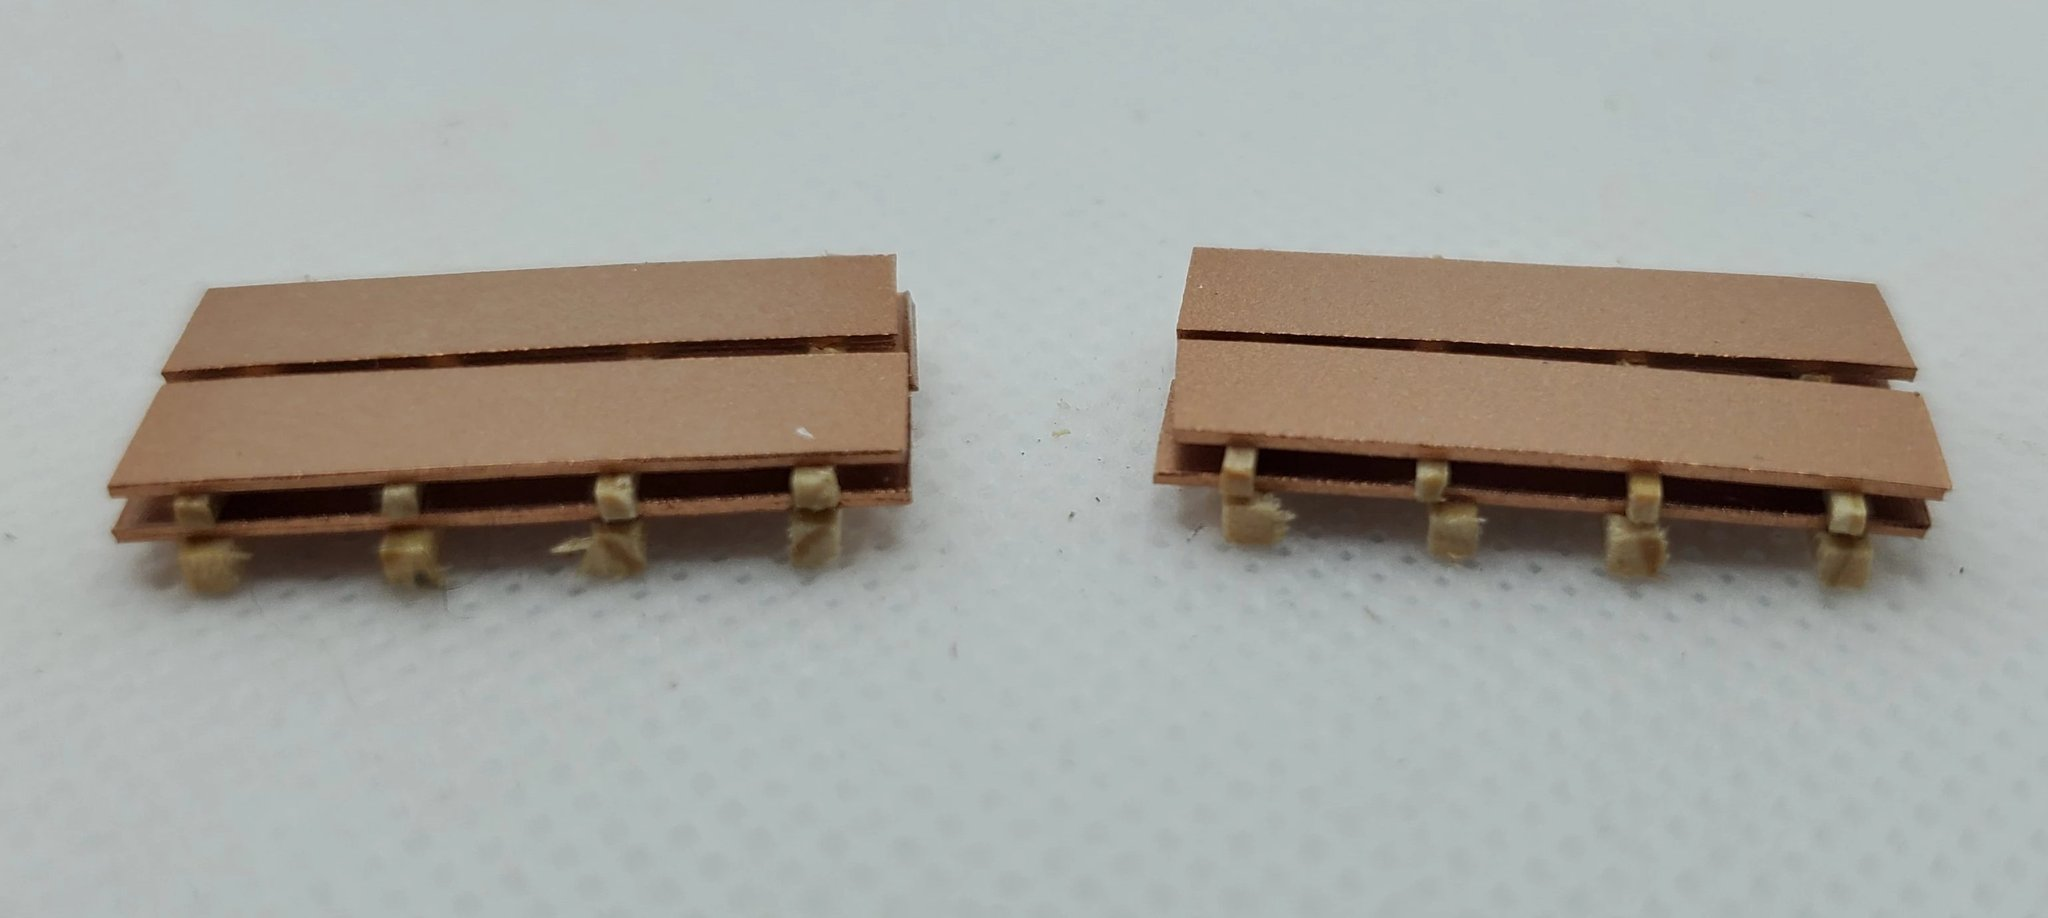 N Scale - CG Model Trains - 13539 - Railcar Loads - Painted/Unlettered - Copper Sheeting